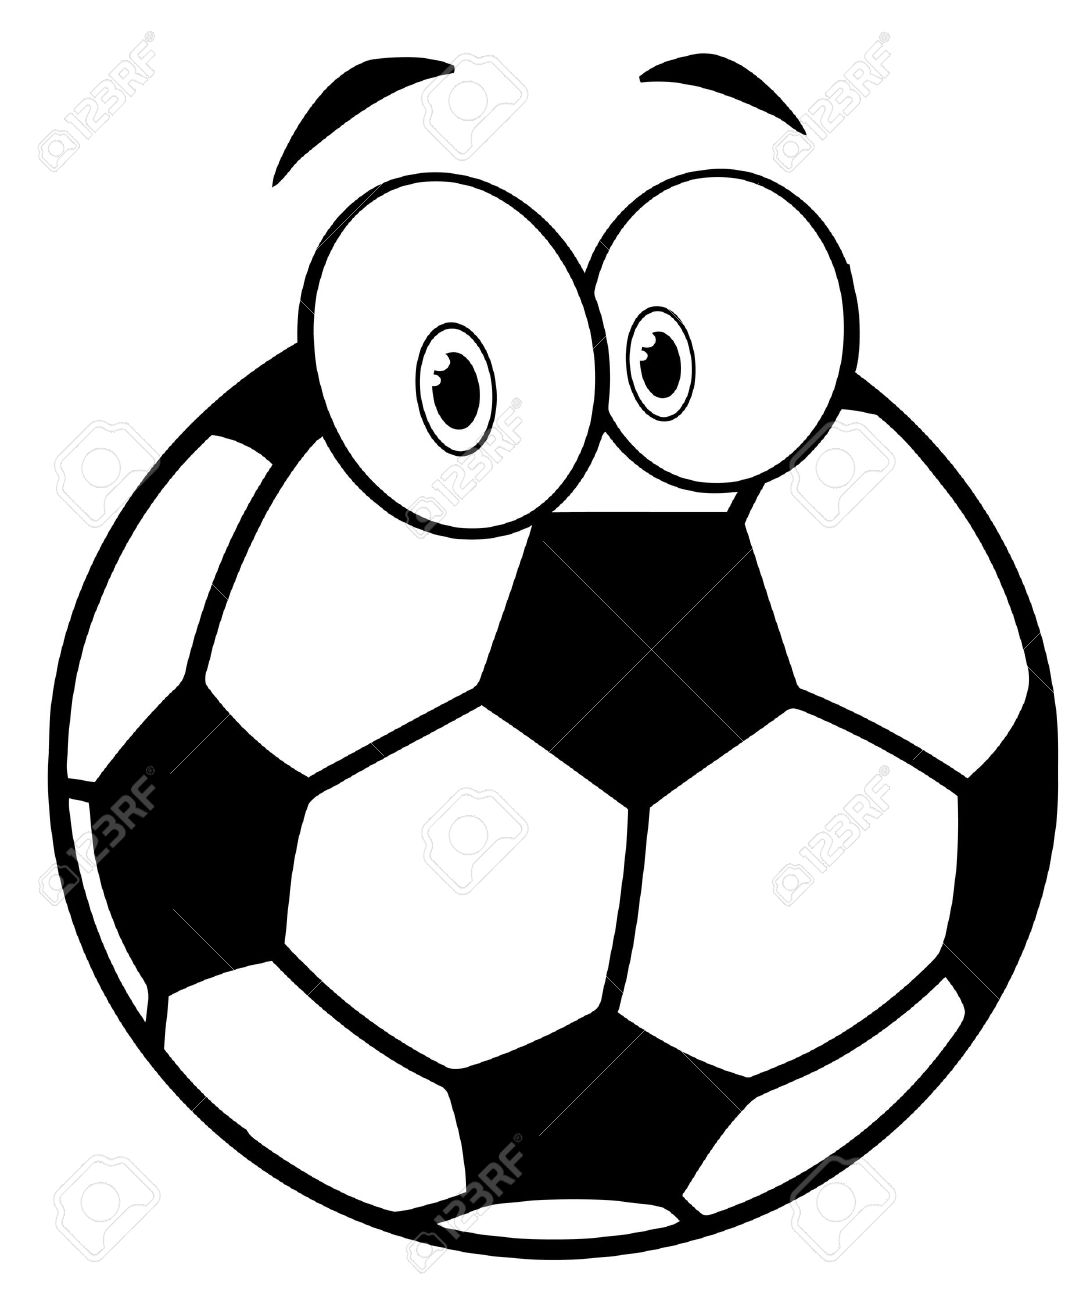 1090x1300 Outlined Cartoon Soccer Ball Royalty Free Cliparts, Vectors,